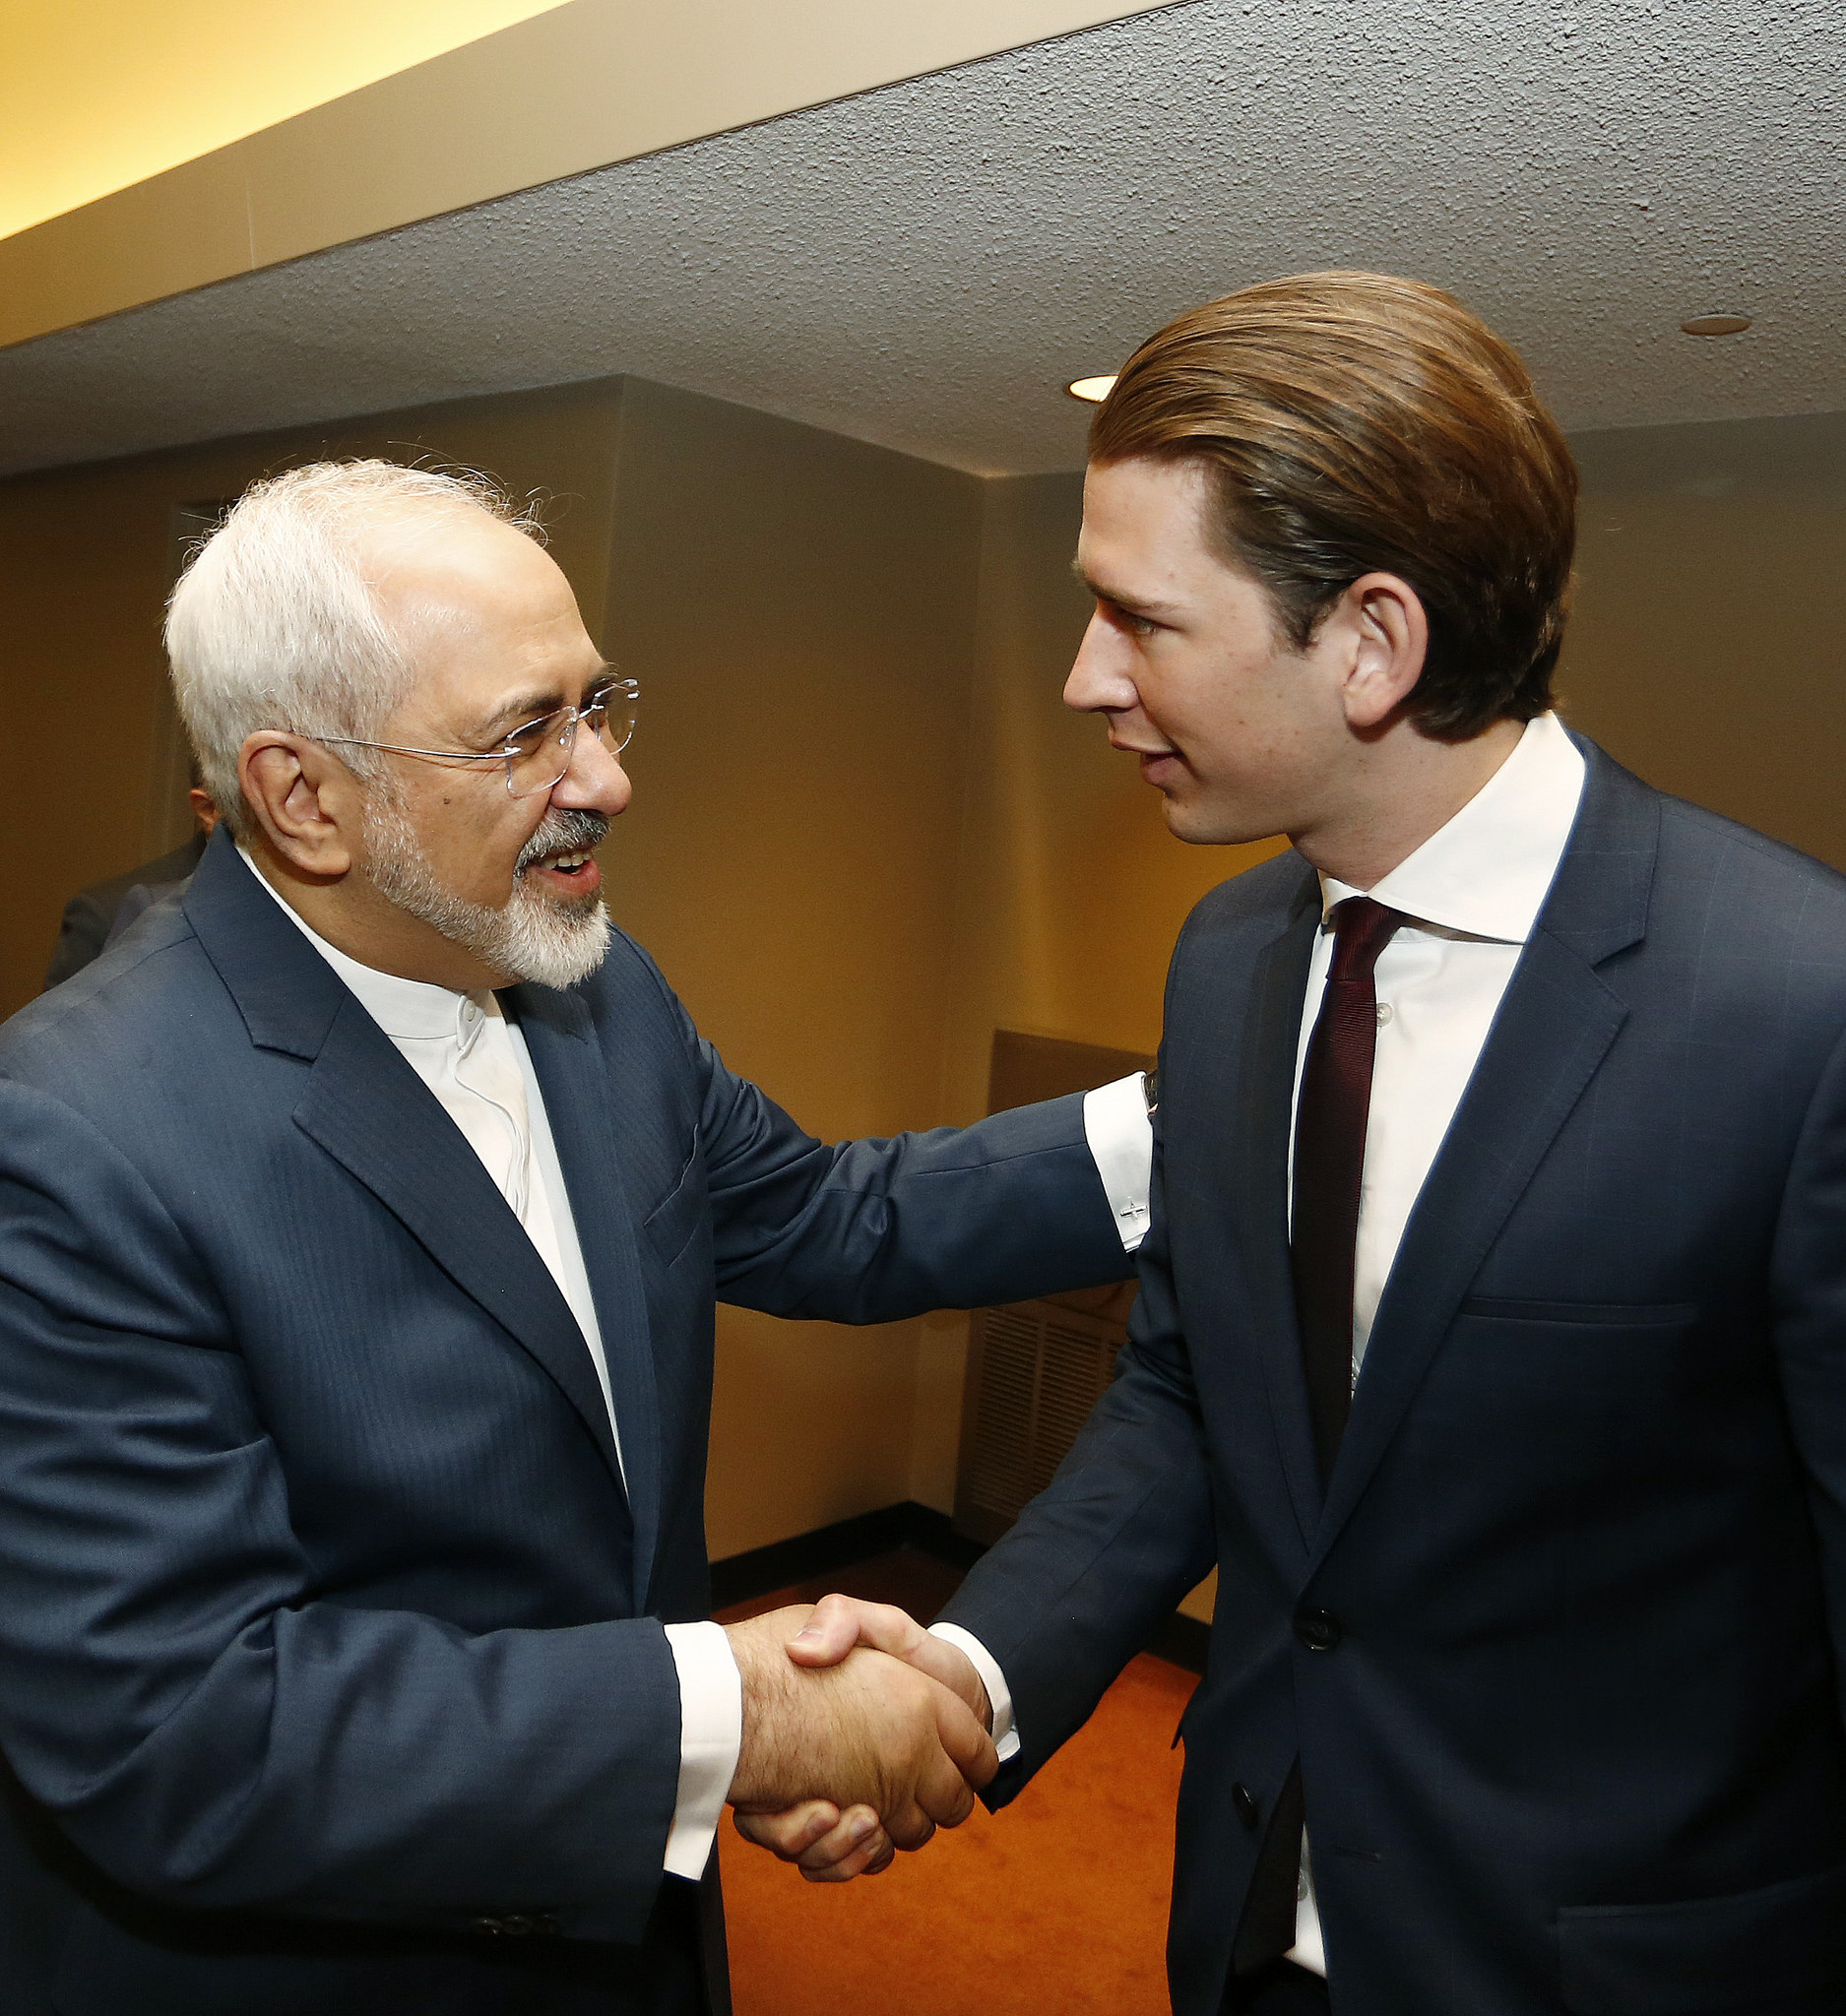 Foreign Minister Sebastian Kurz meets Mohammad Javad Zarif, the foreign minister of Iran, at the  Review   Conference of the Non-Proliferation Treaty (NPT) at the United Nations. Photo: Dragan Tatic.